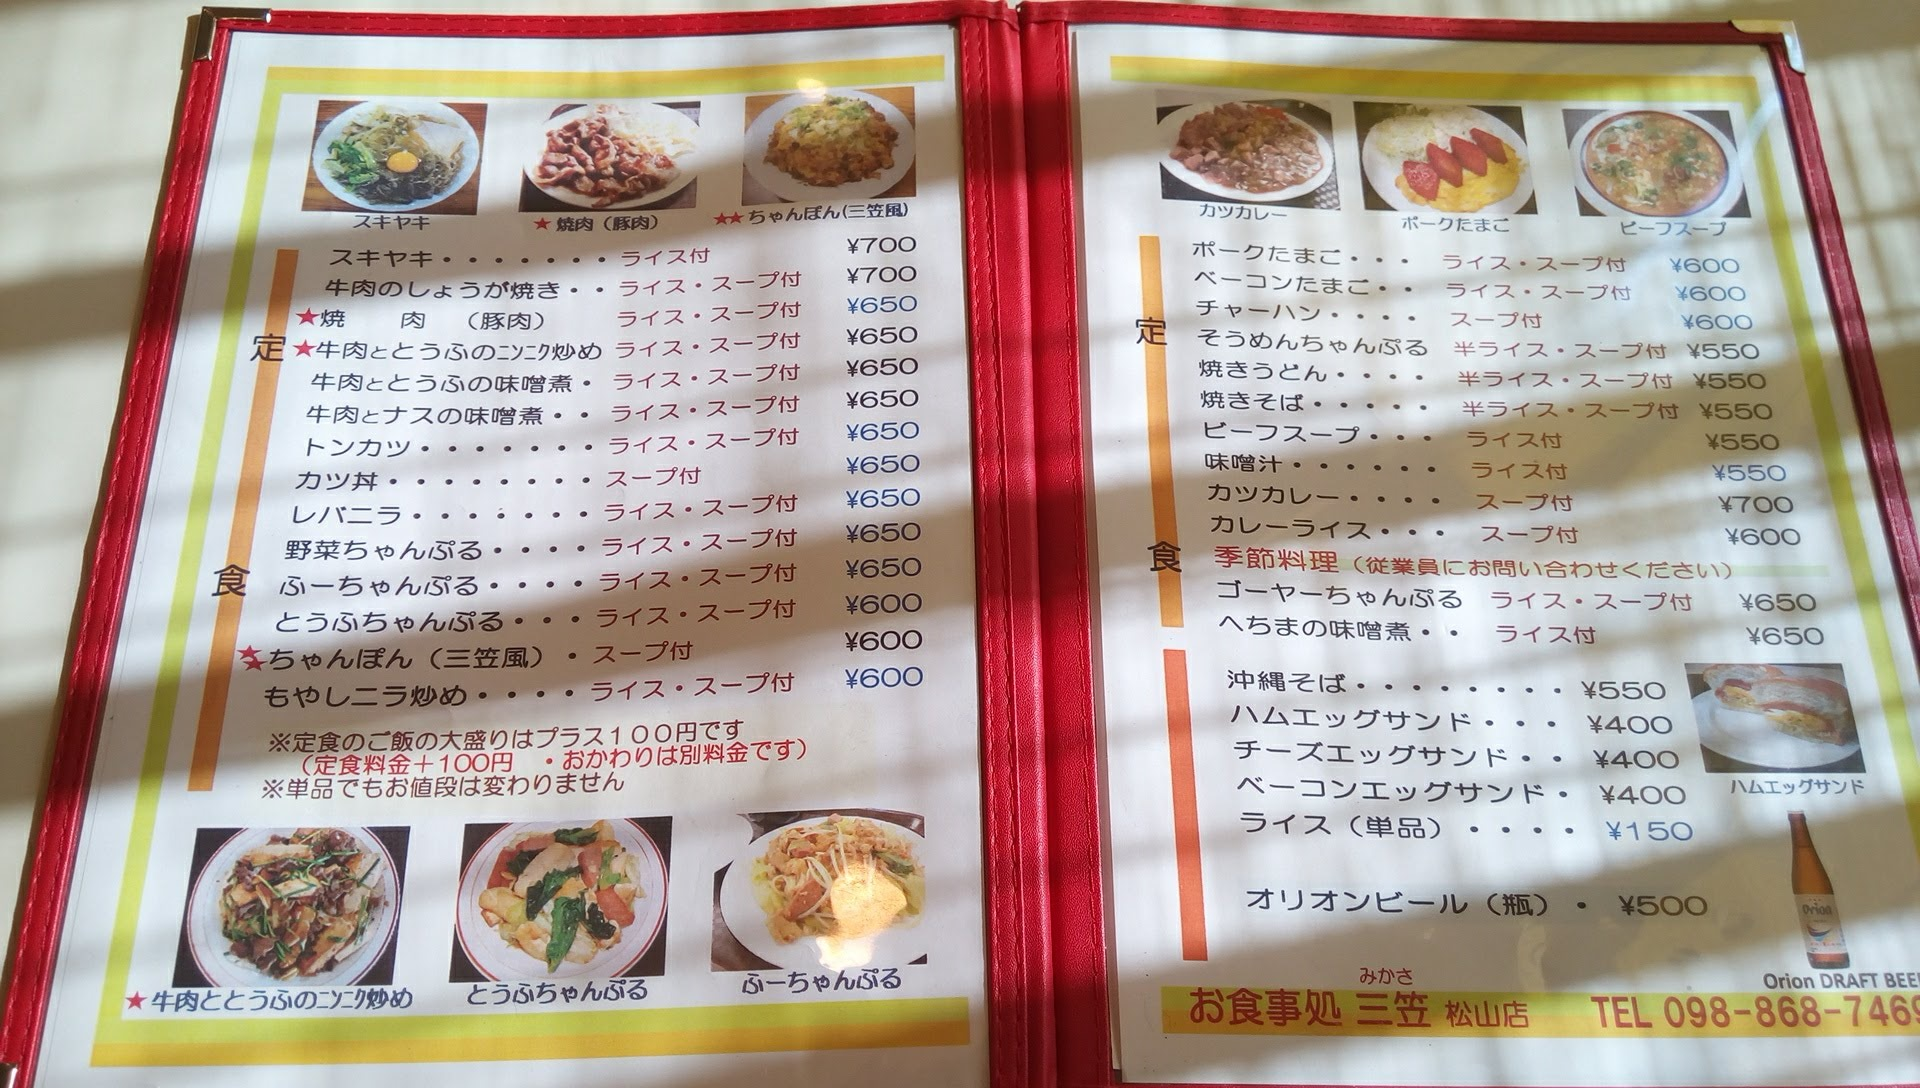 the menu of Mikasa 2